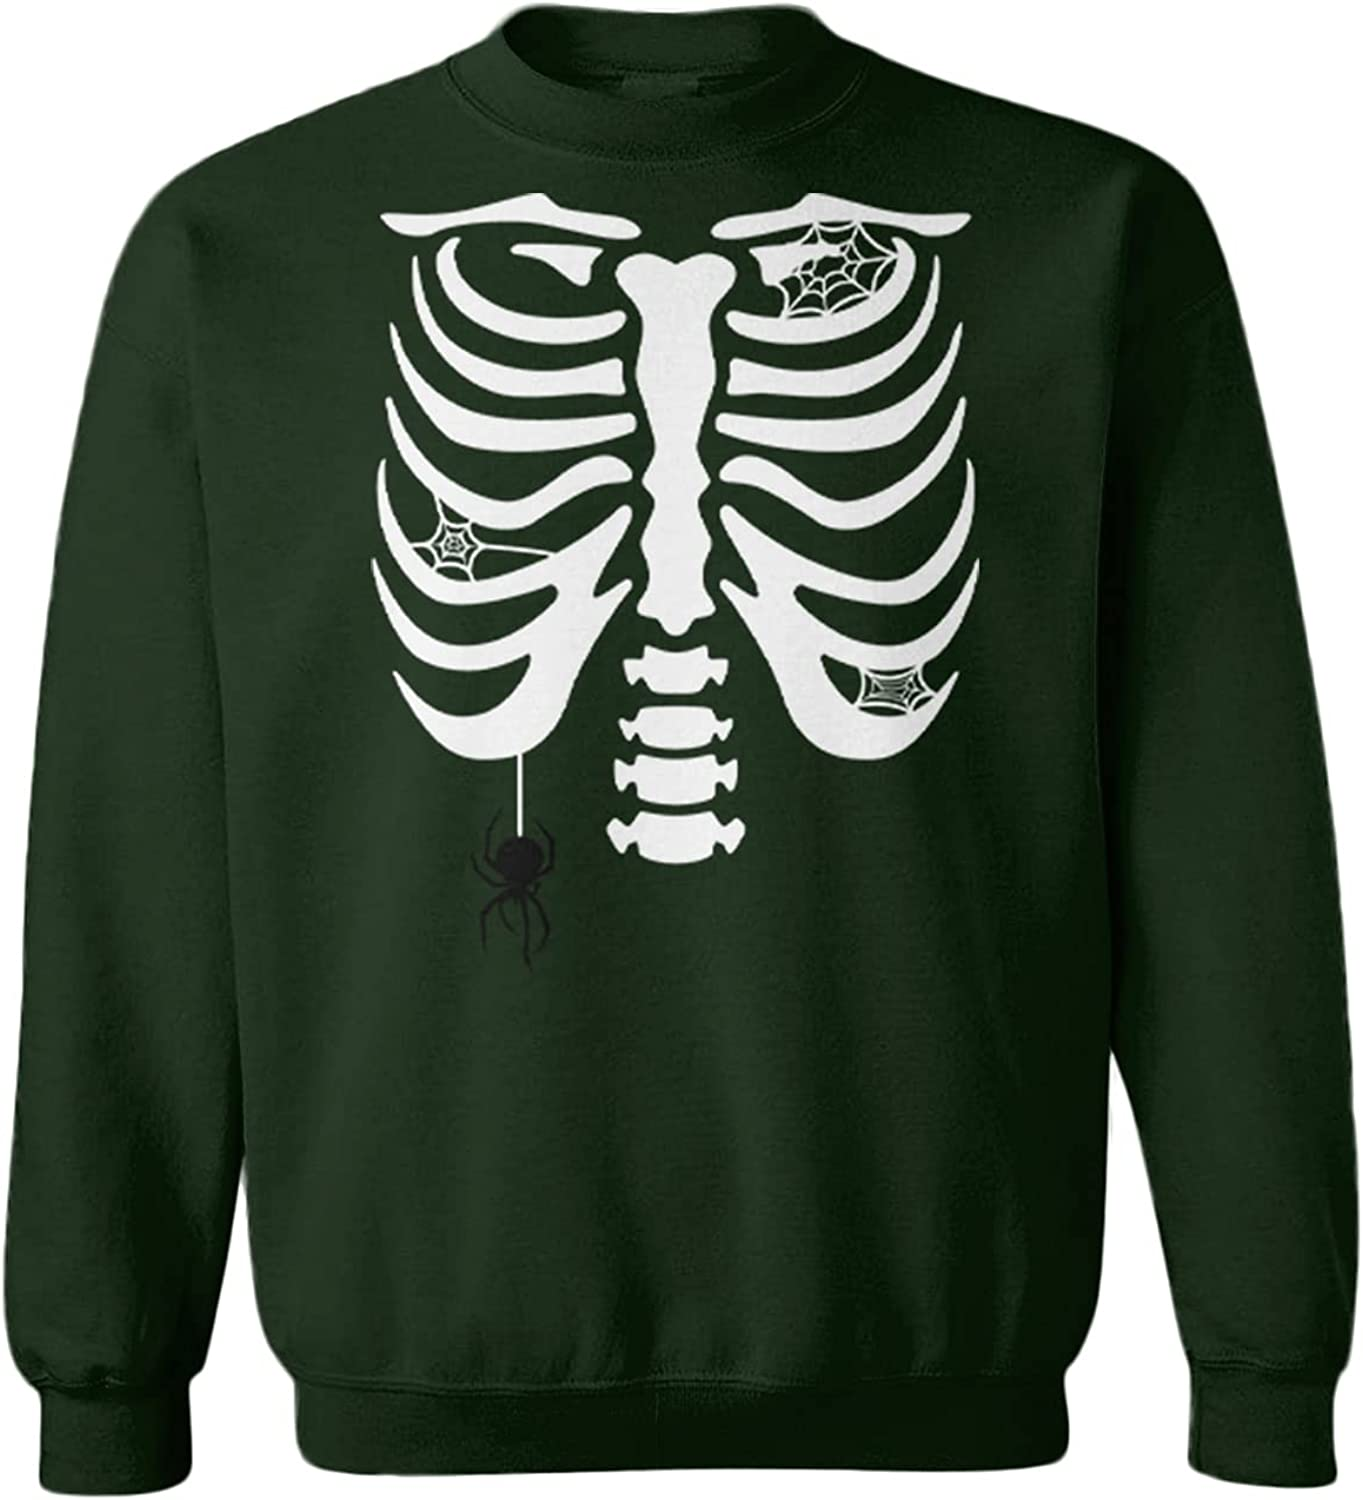 Tcombo Skeleton Ribcage Max 54% OFF with Spider Webs Fleece - Import Toddler Crewne